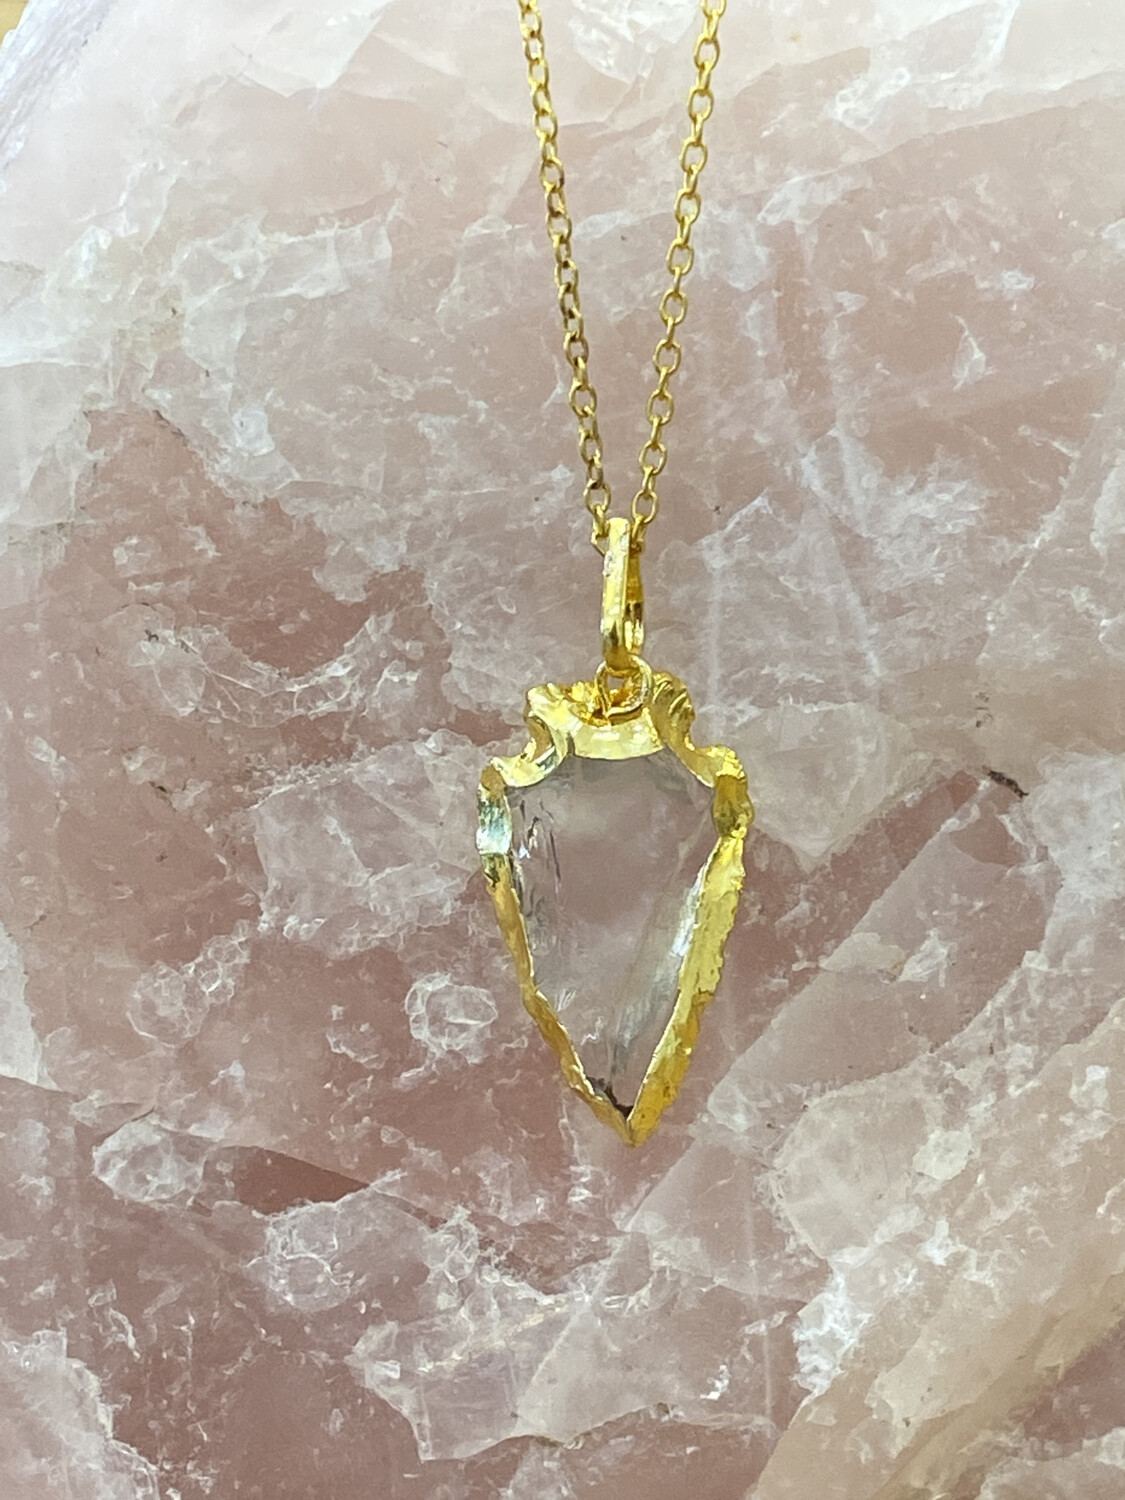 Arrow Head Dipped Gold Crystal Gold Necklace Pendant